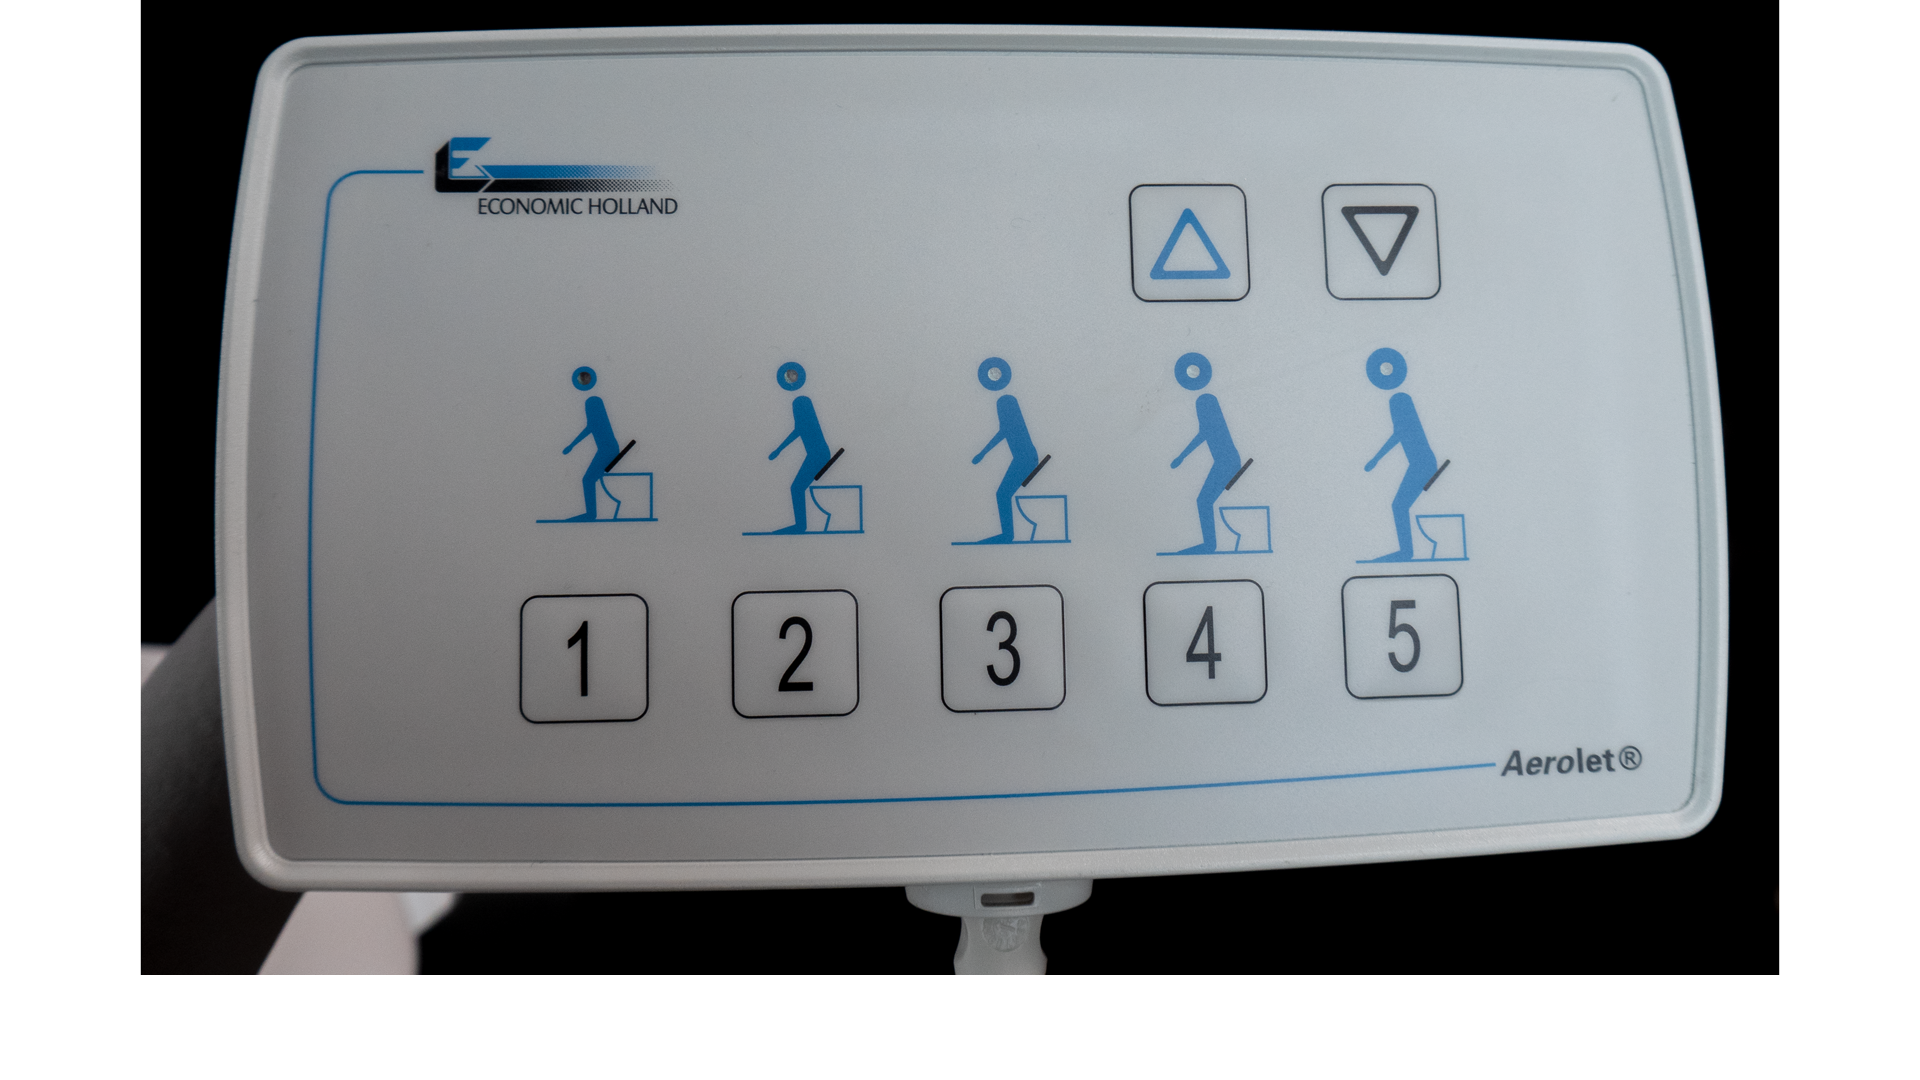 Bedienung per Taster - Aerolet® Toilettenlift